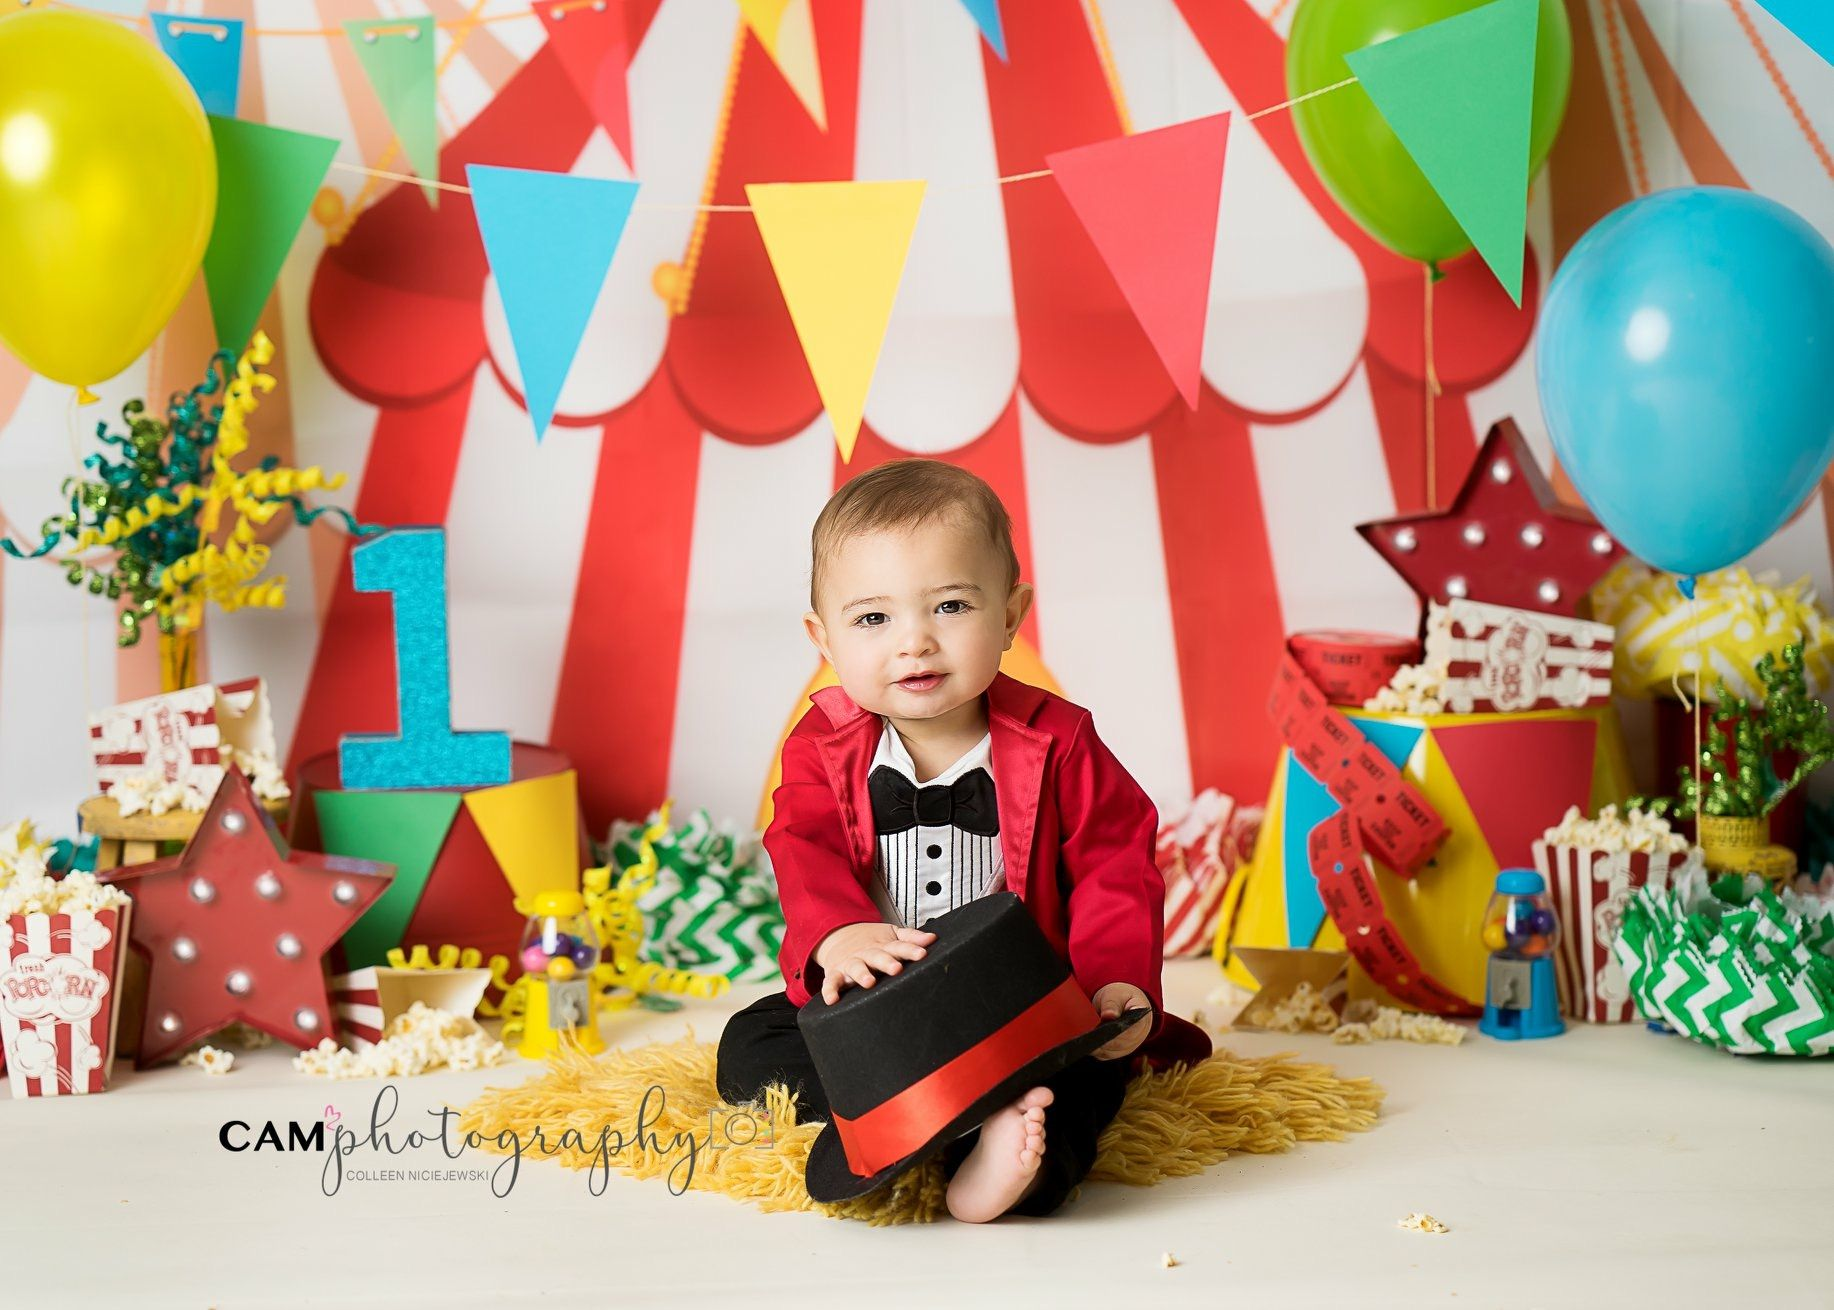 The Greatest Showman Circus Master Of Ceremonies Big Top Child Photographer Cak Circus 1st Birthdays Circus Birthday Party Theme Circus First Birthday